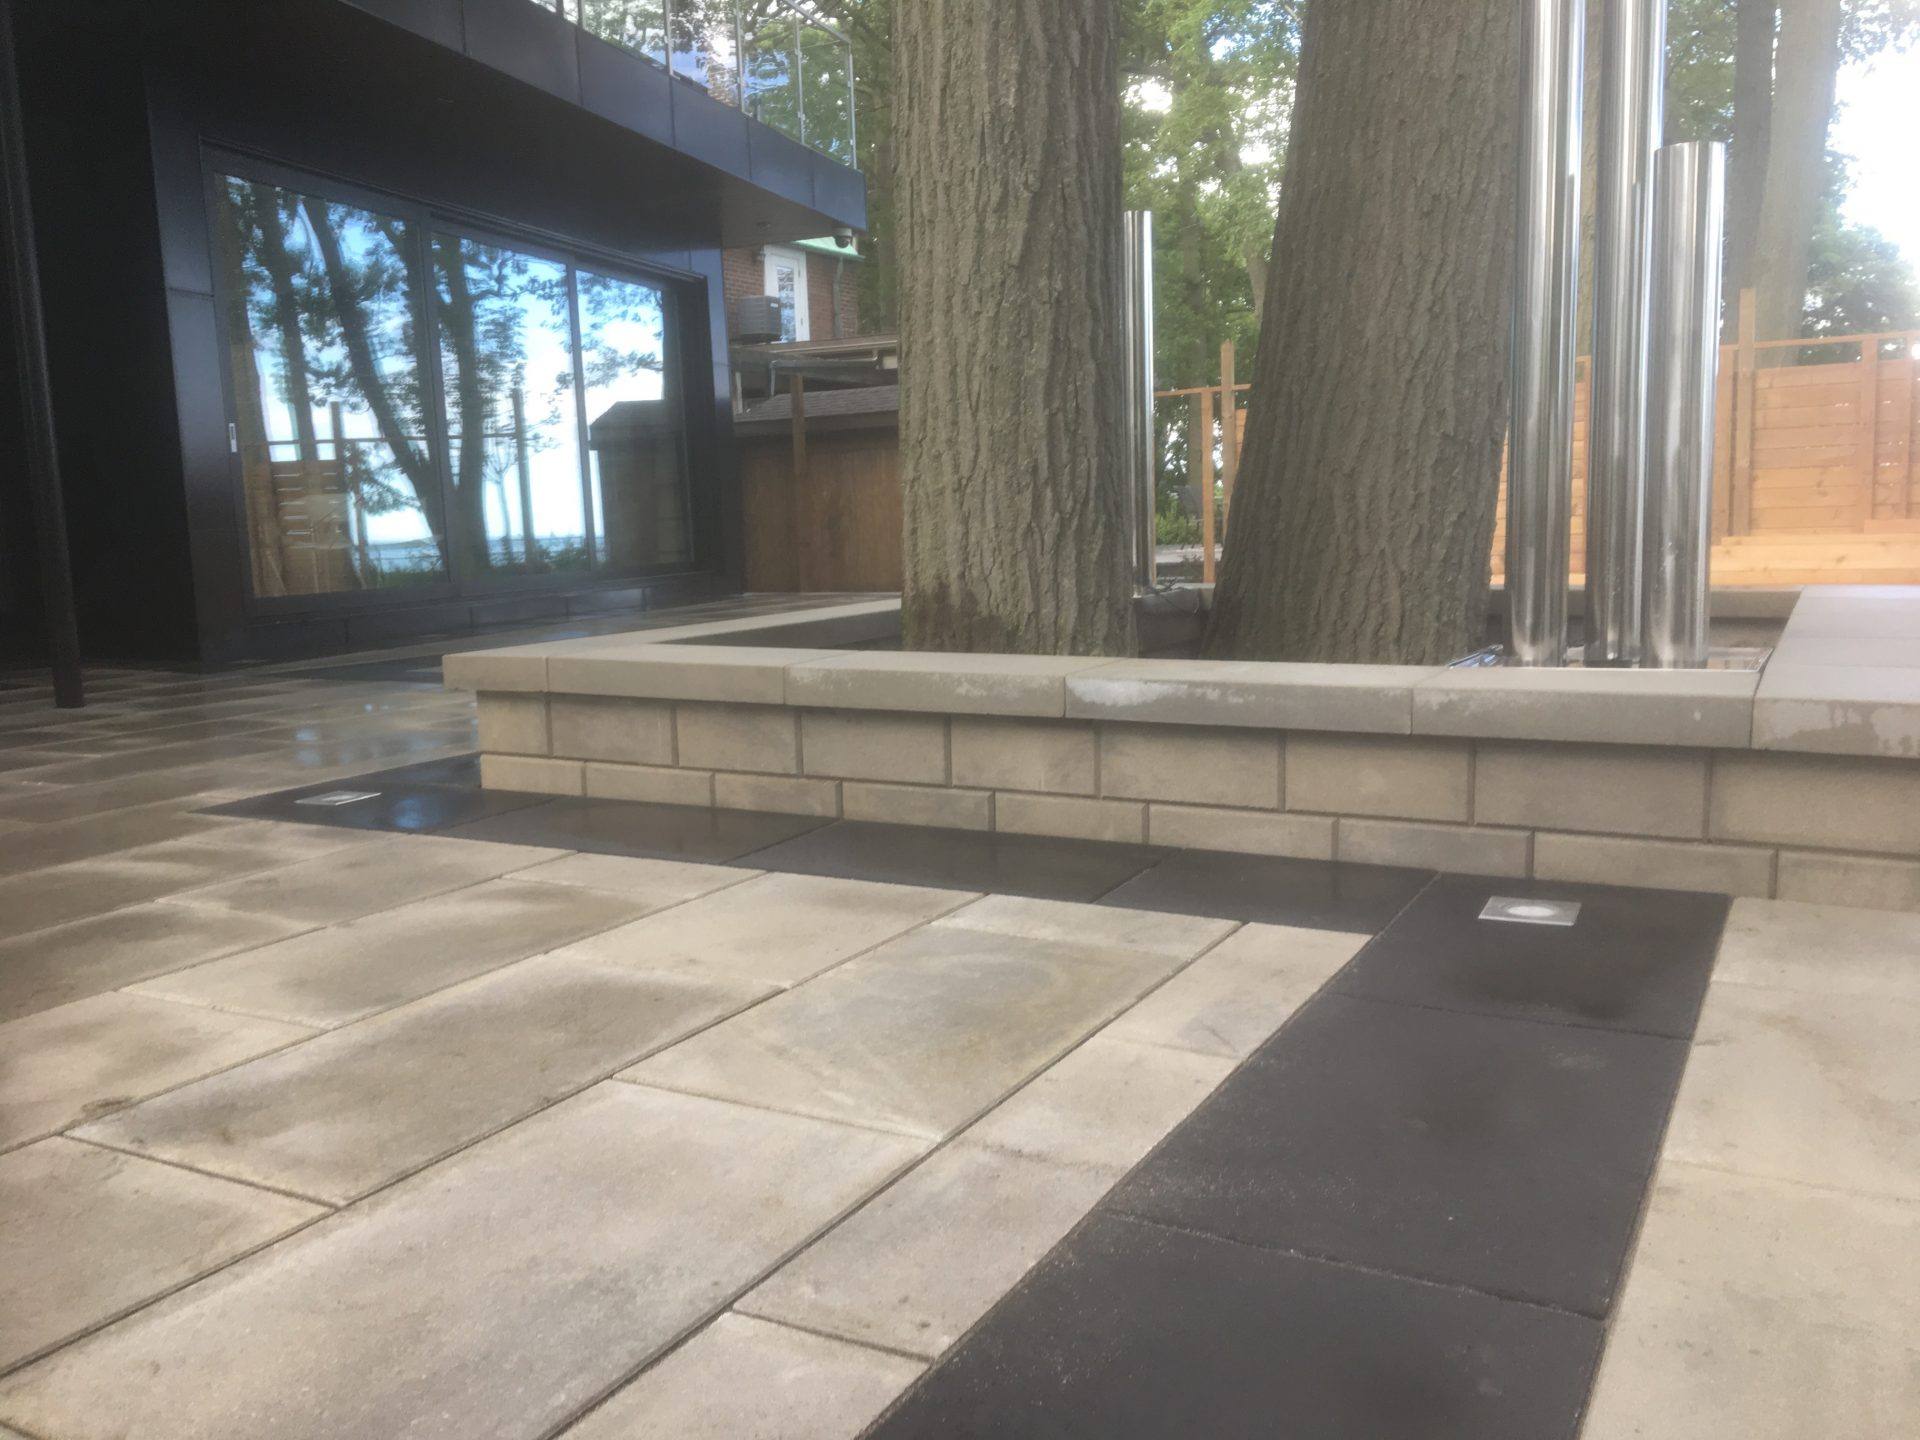 interlock stones and retaining wall